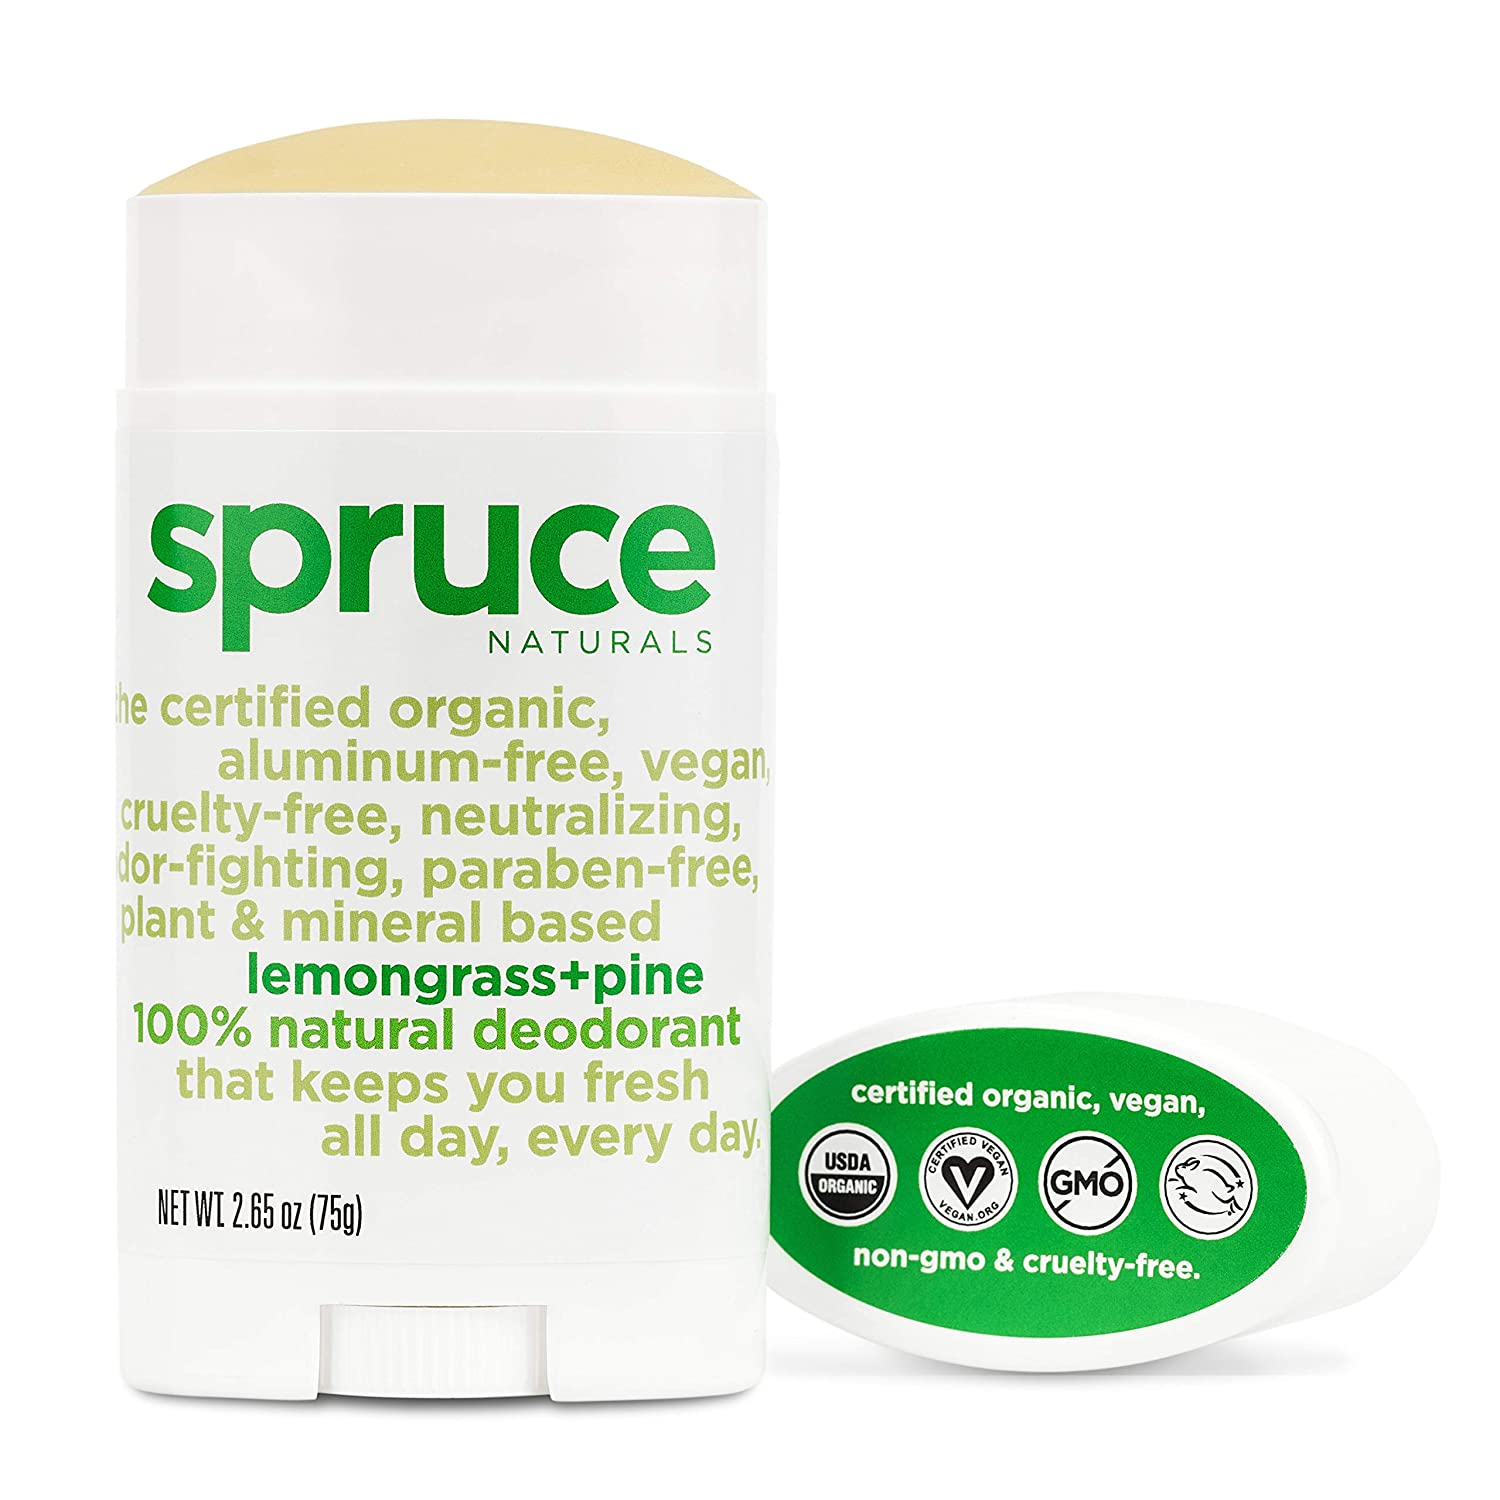 SPRUCE NATURALS: The All Natural Deodorant for Women and Me, Aluminum free Deodorant, Cruelty free Deodorant, Non GMO, USDA Organic Deodorant, Long Lasting Deodorant - Lemon Grass + Pine